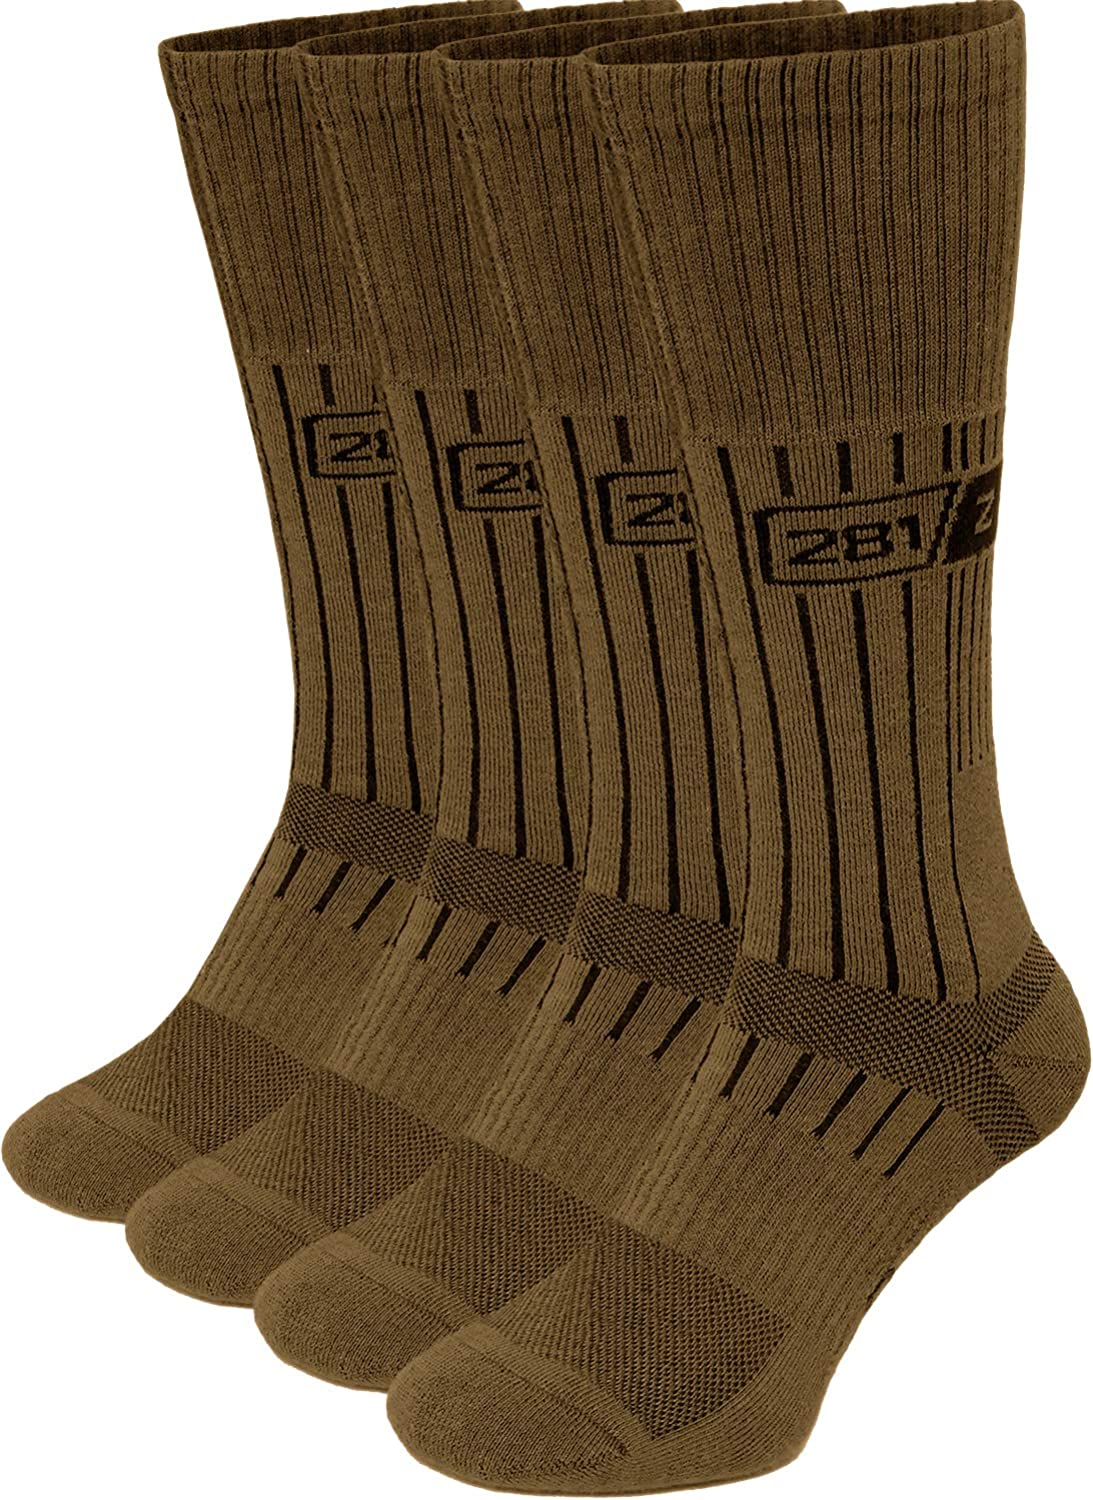 281Z Military Boot Socks - Tactical Trekking Hiking - Outdoor Athletic Sport (Coyote Brown)